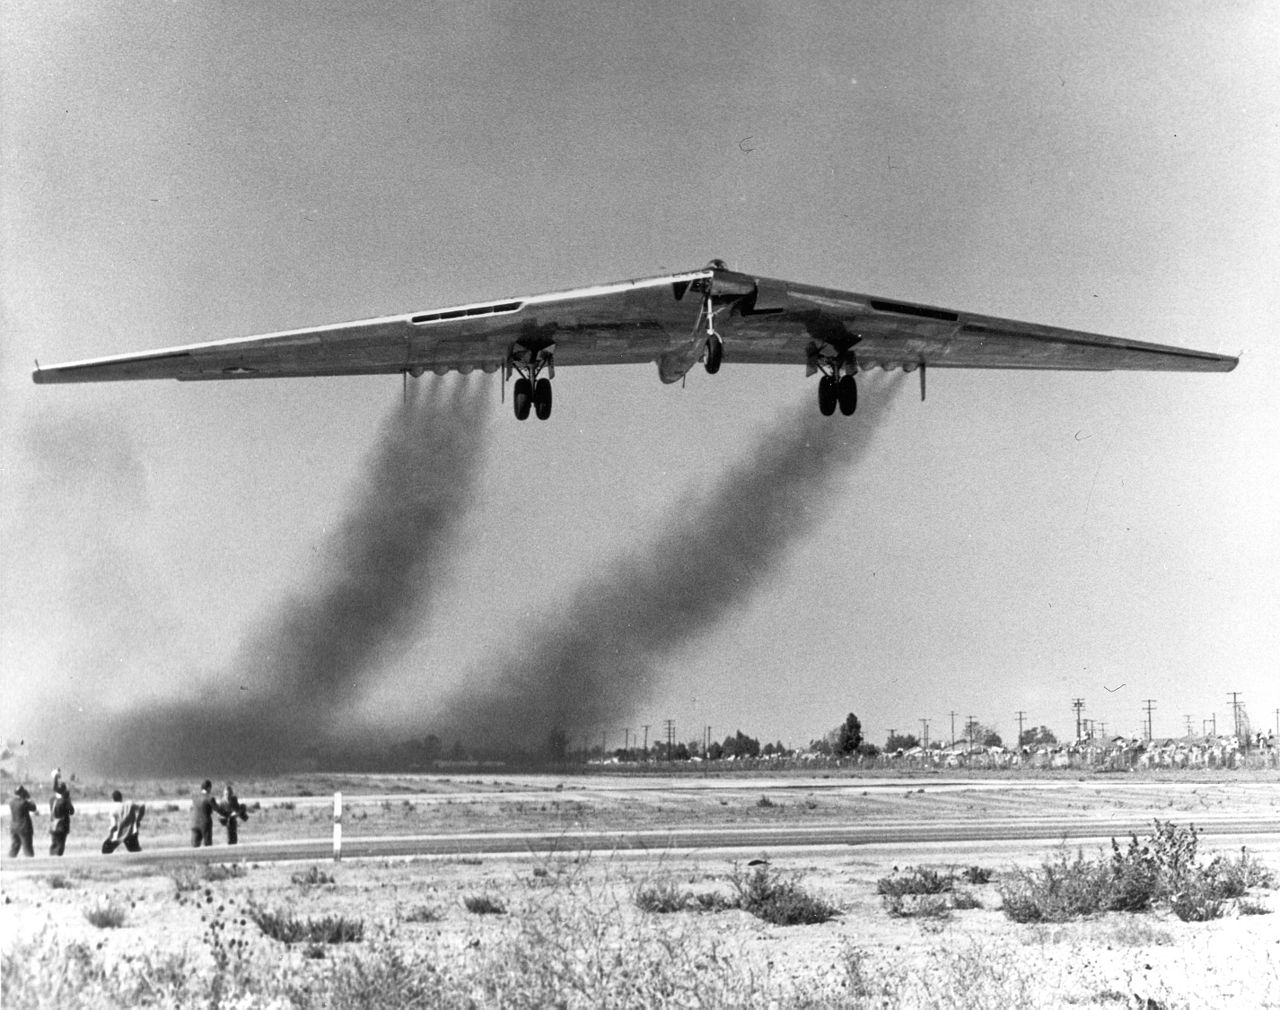 YB-49 takes to the sky